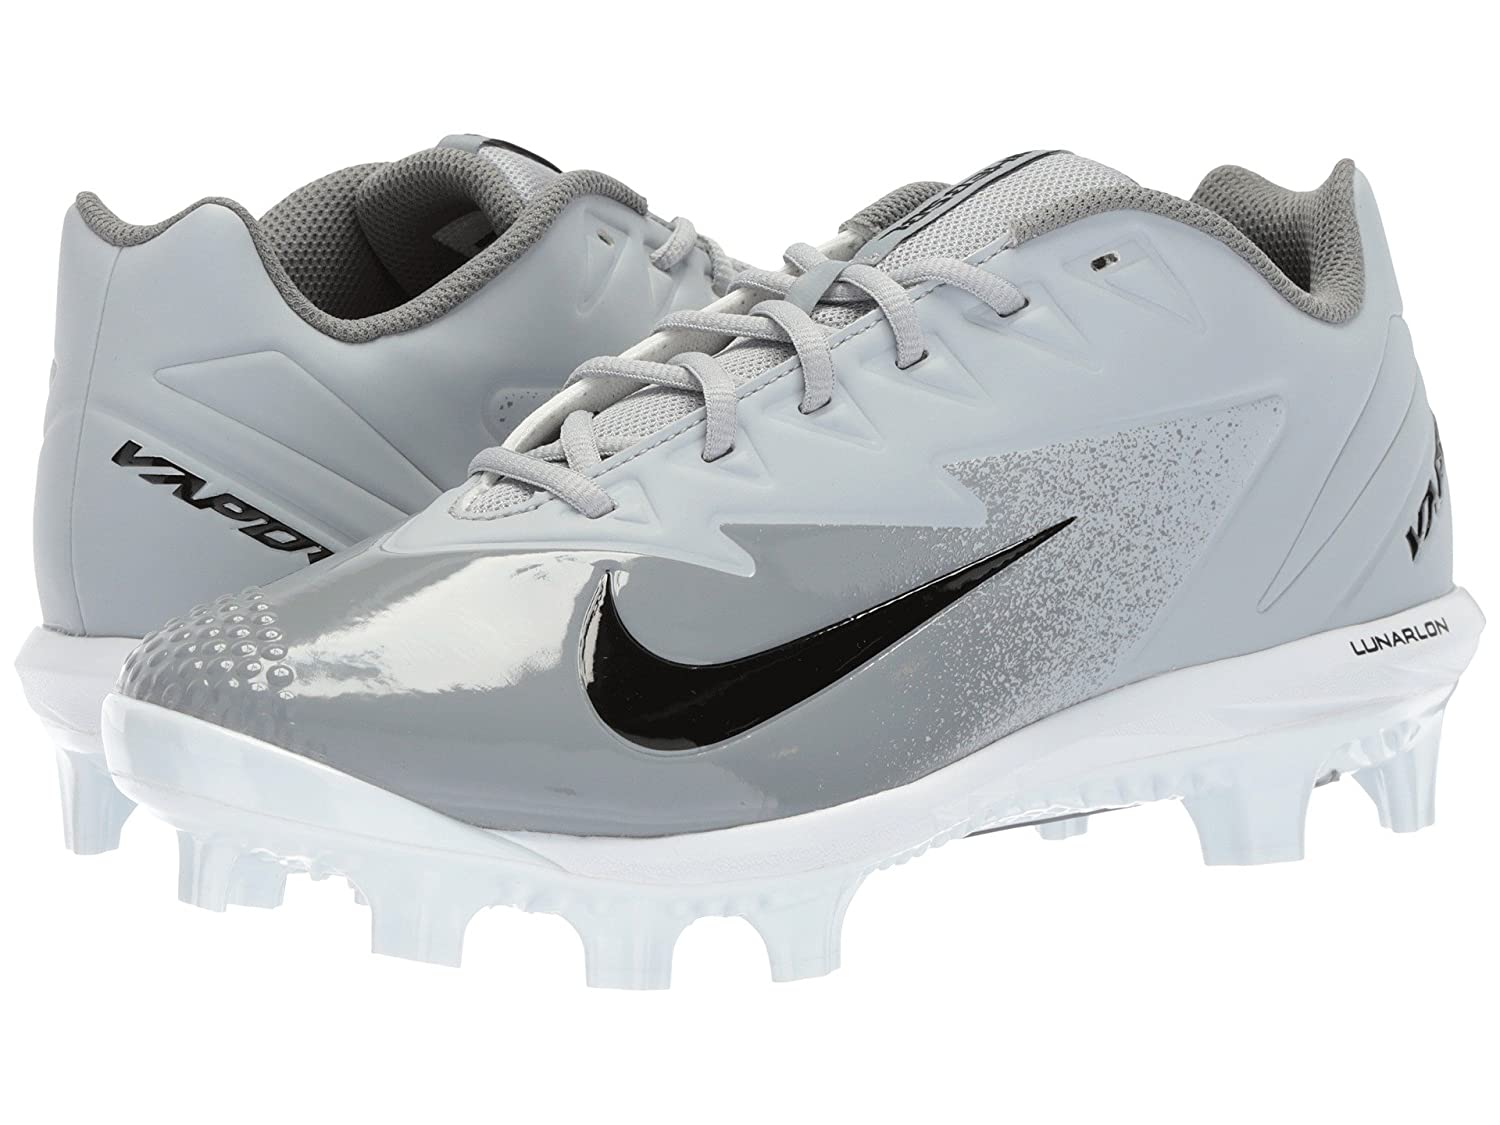 (ナイキ) NIKE メンズ野球ベースボールシューズ靴 Vapor Ultrafly Pro MCS Wolf Grey/White/Cool Grey/White 12 (30cm) D Medium B078Q3QVTZ